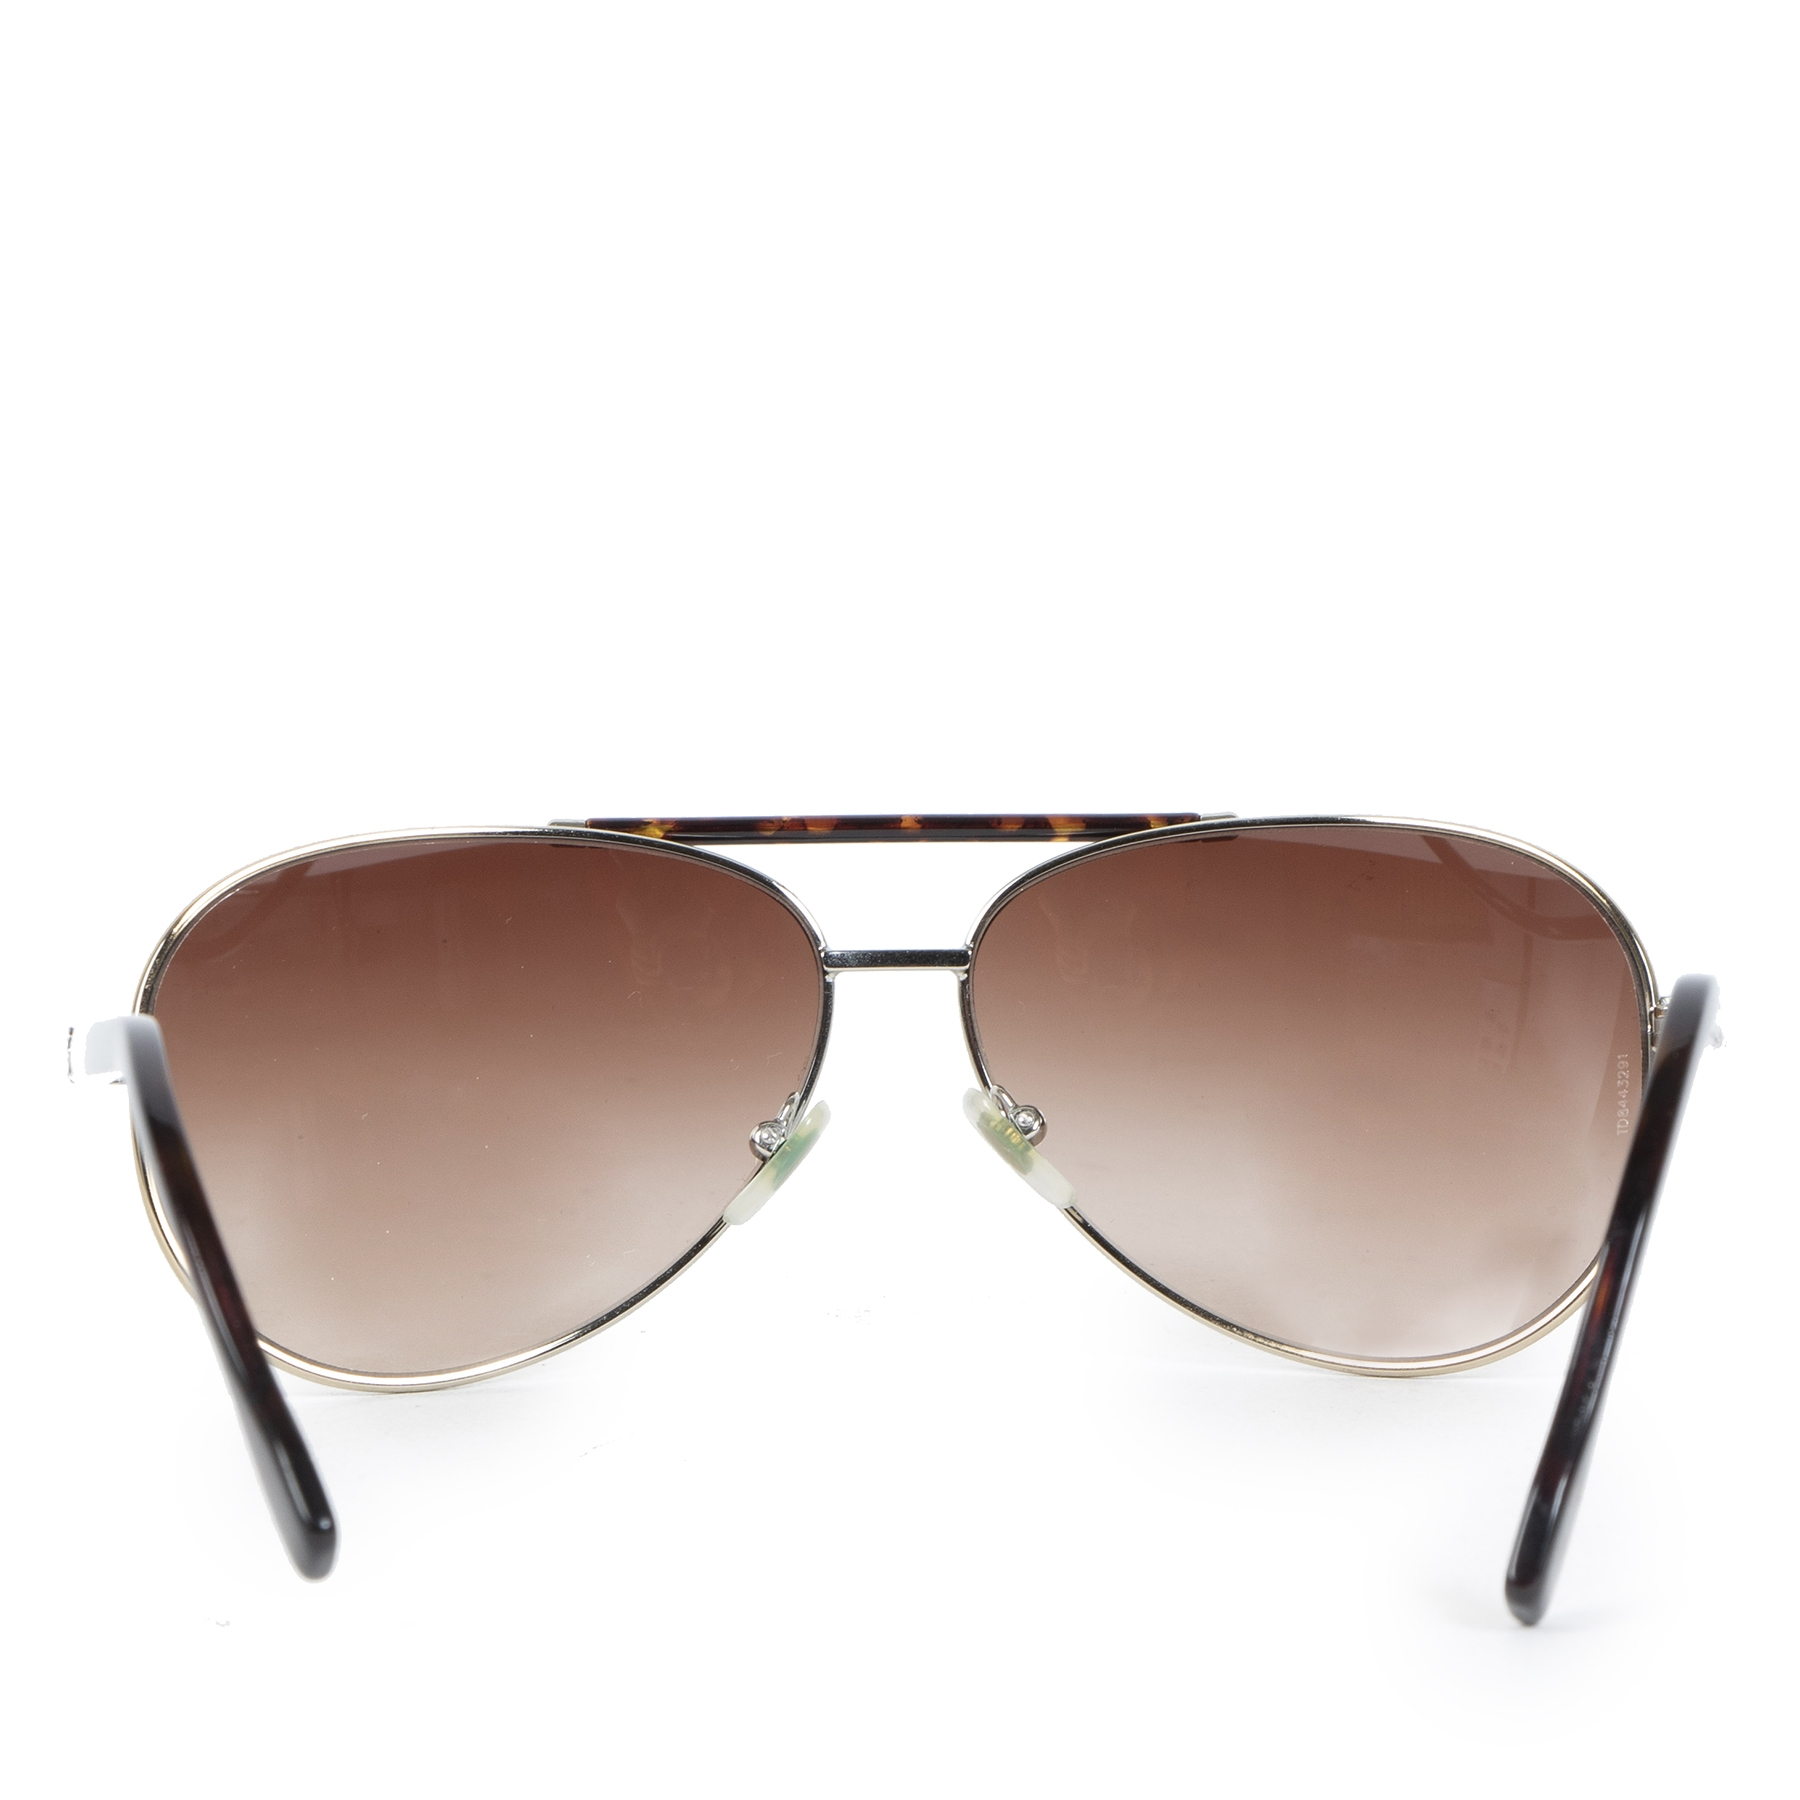 Authentic secondhand Dolce & Gabbana Brown Gradient Aviator Sunglasses designer accessories fashion luxury vintage webshop safe secure online shopping worldwide shipping